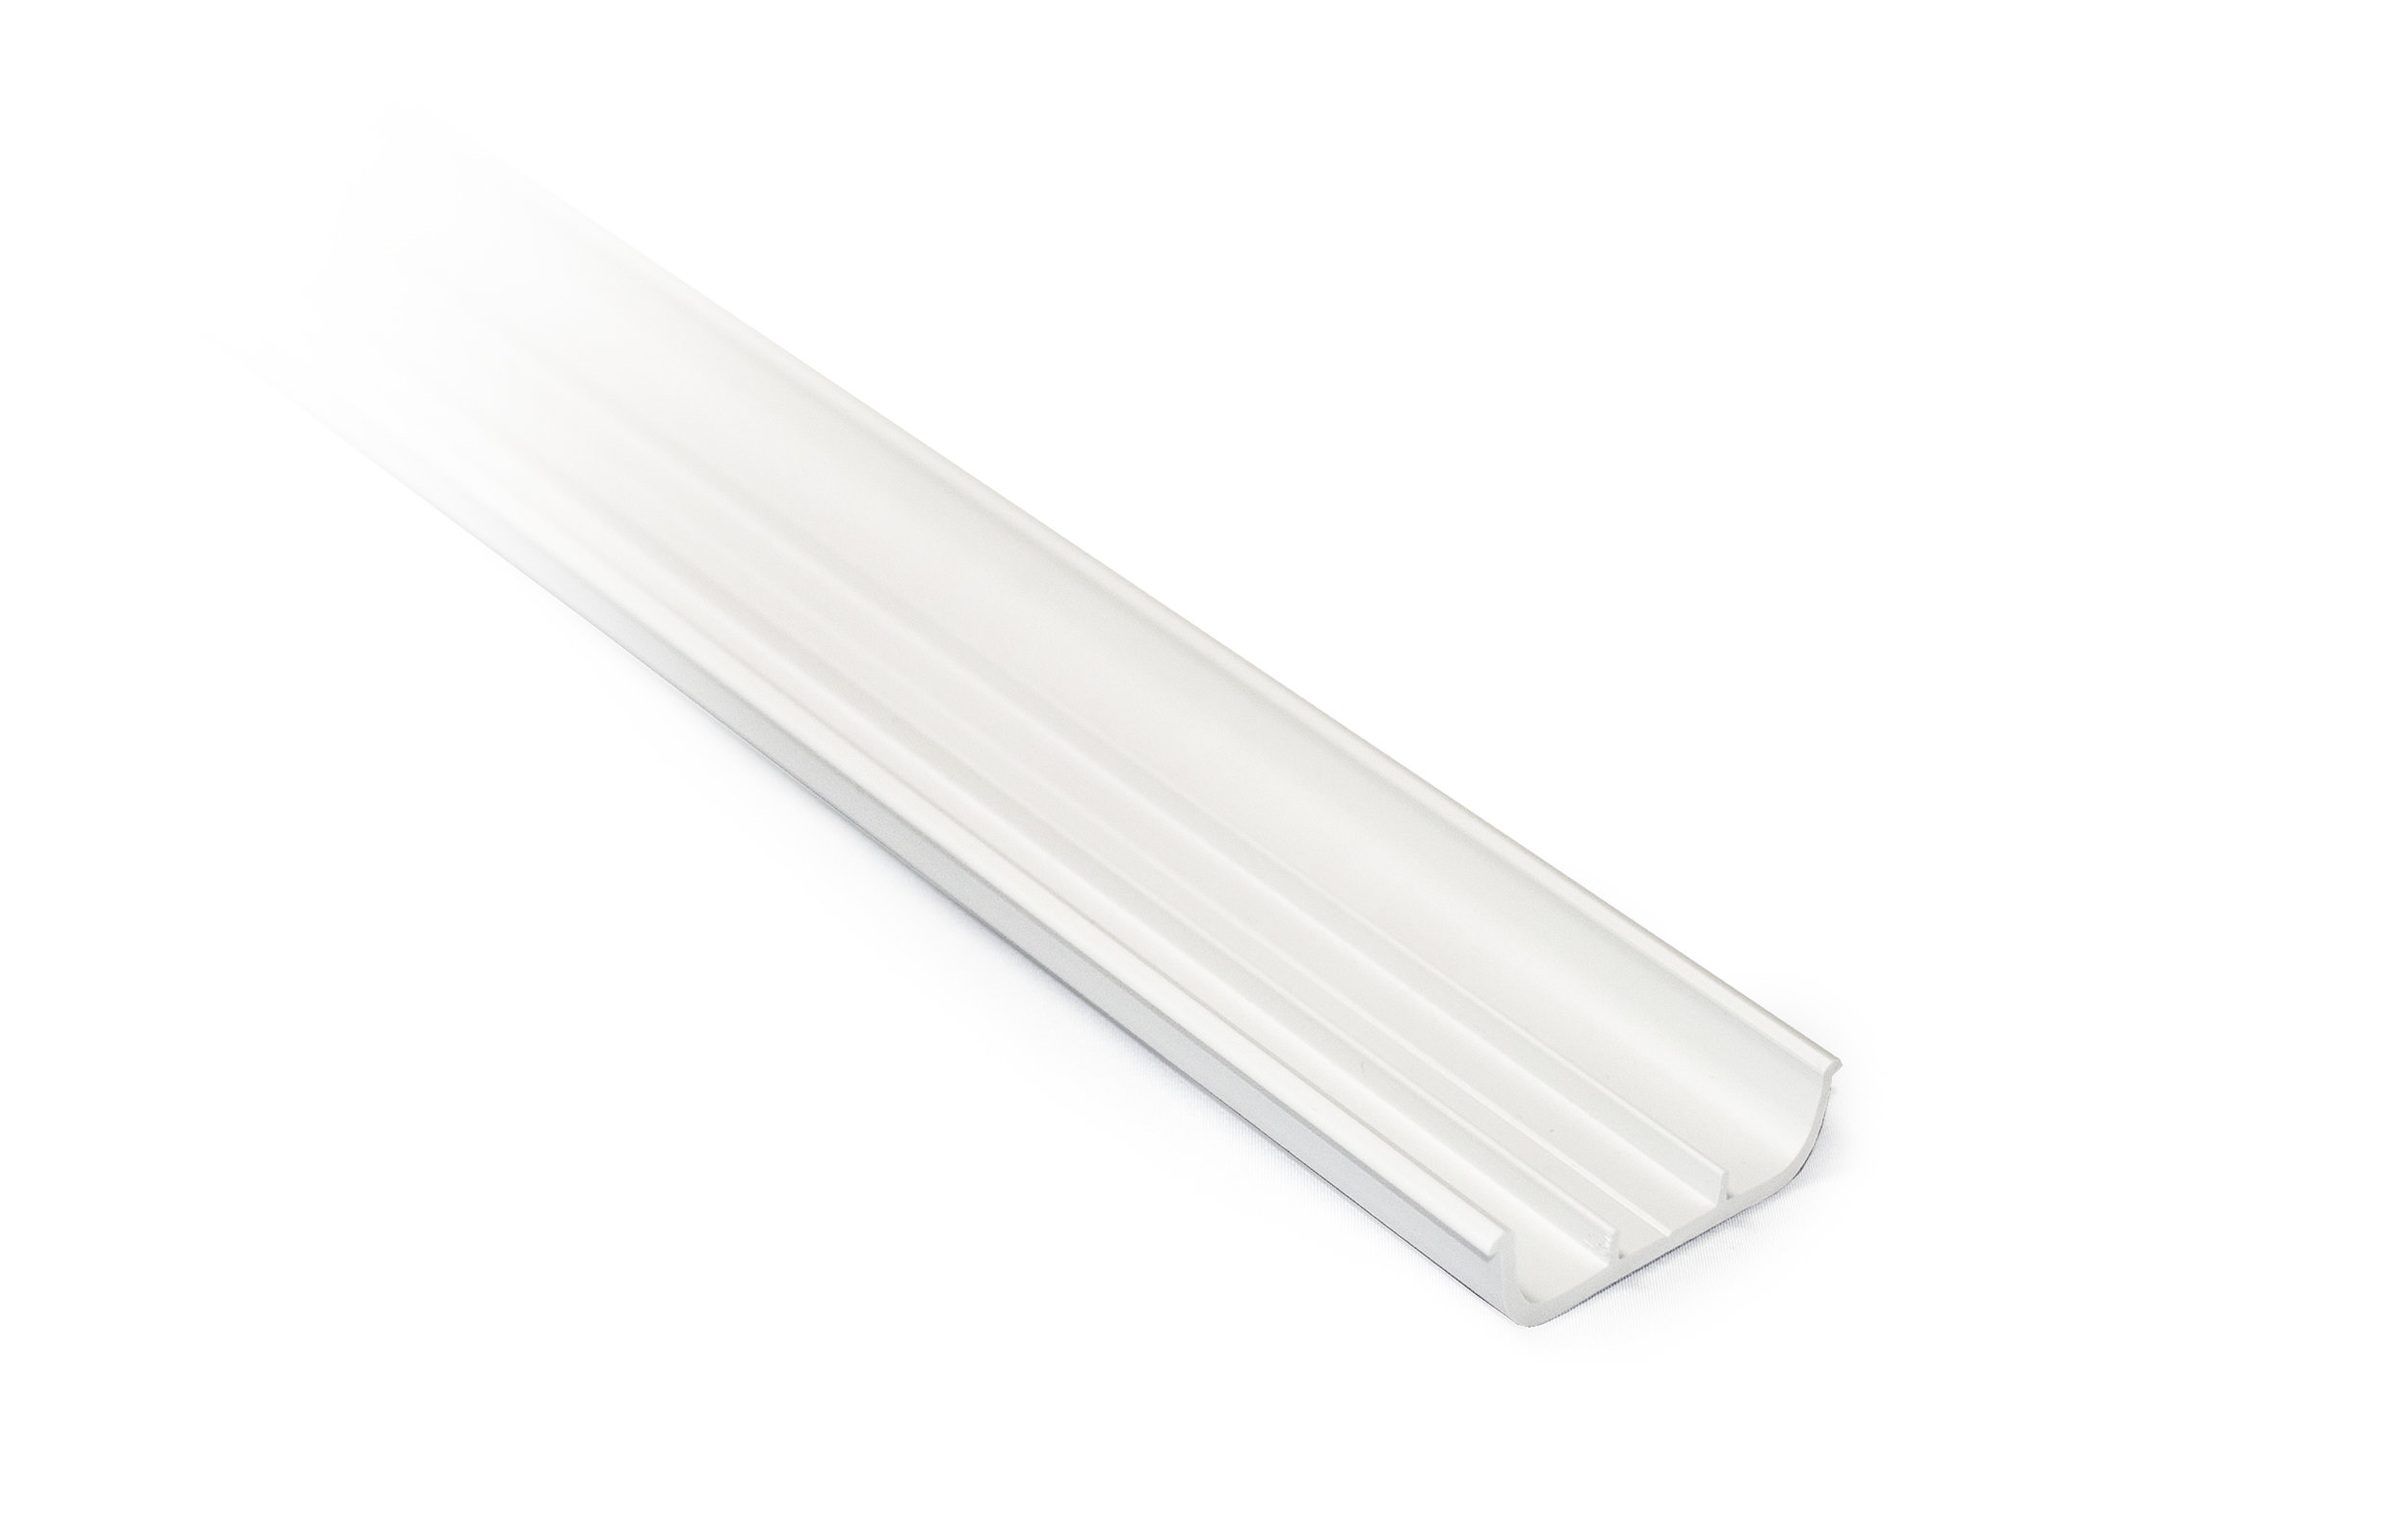 Starter Strip - Durable vinyl material attaches to Quick Install Track10' lengths